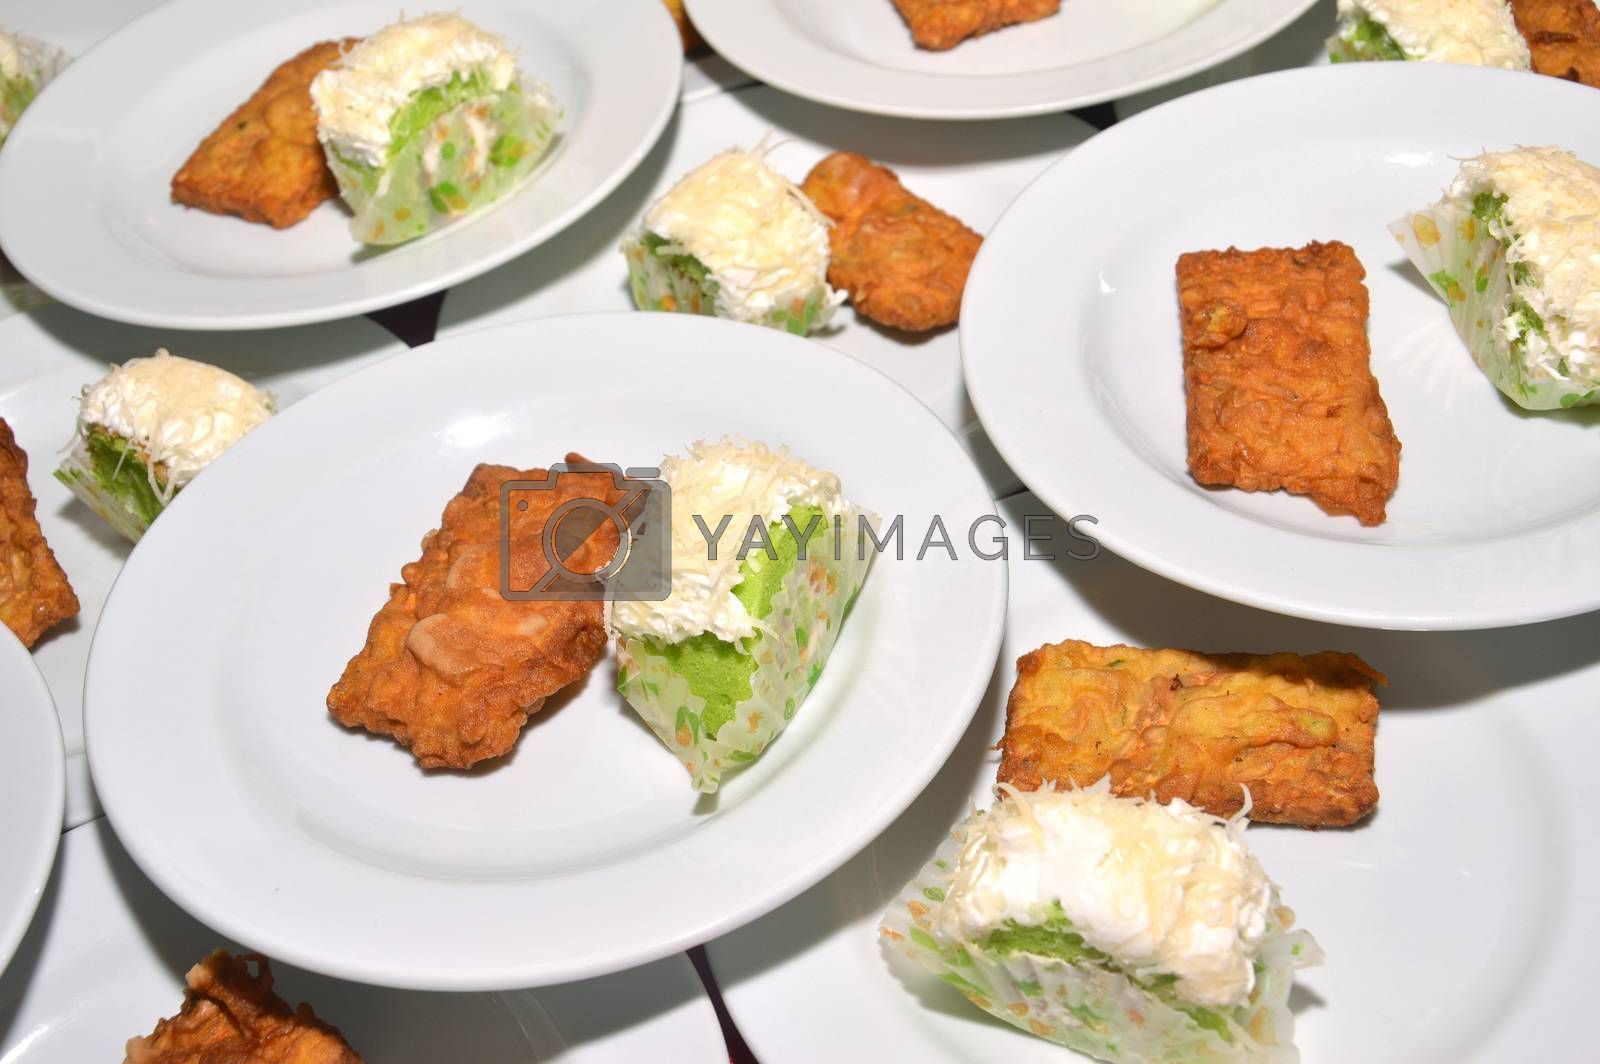 tempe and sponge cake on  white plate